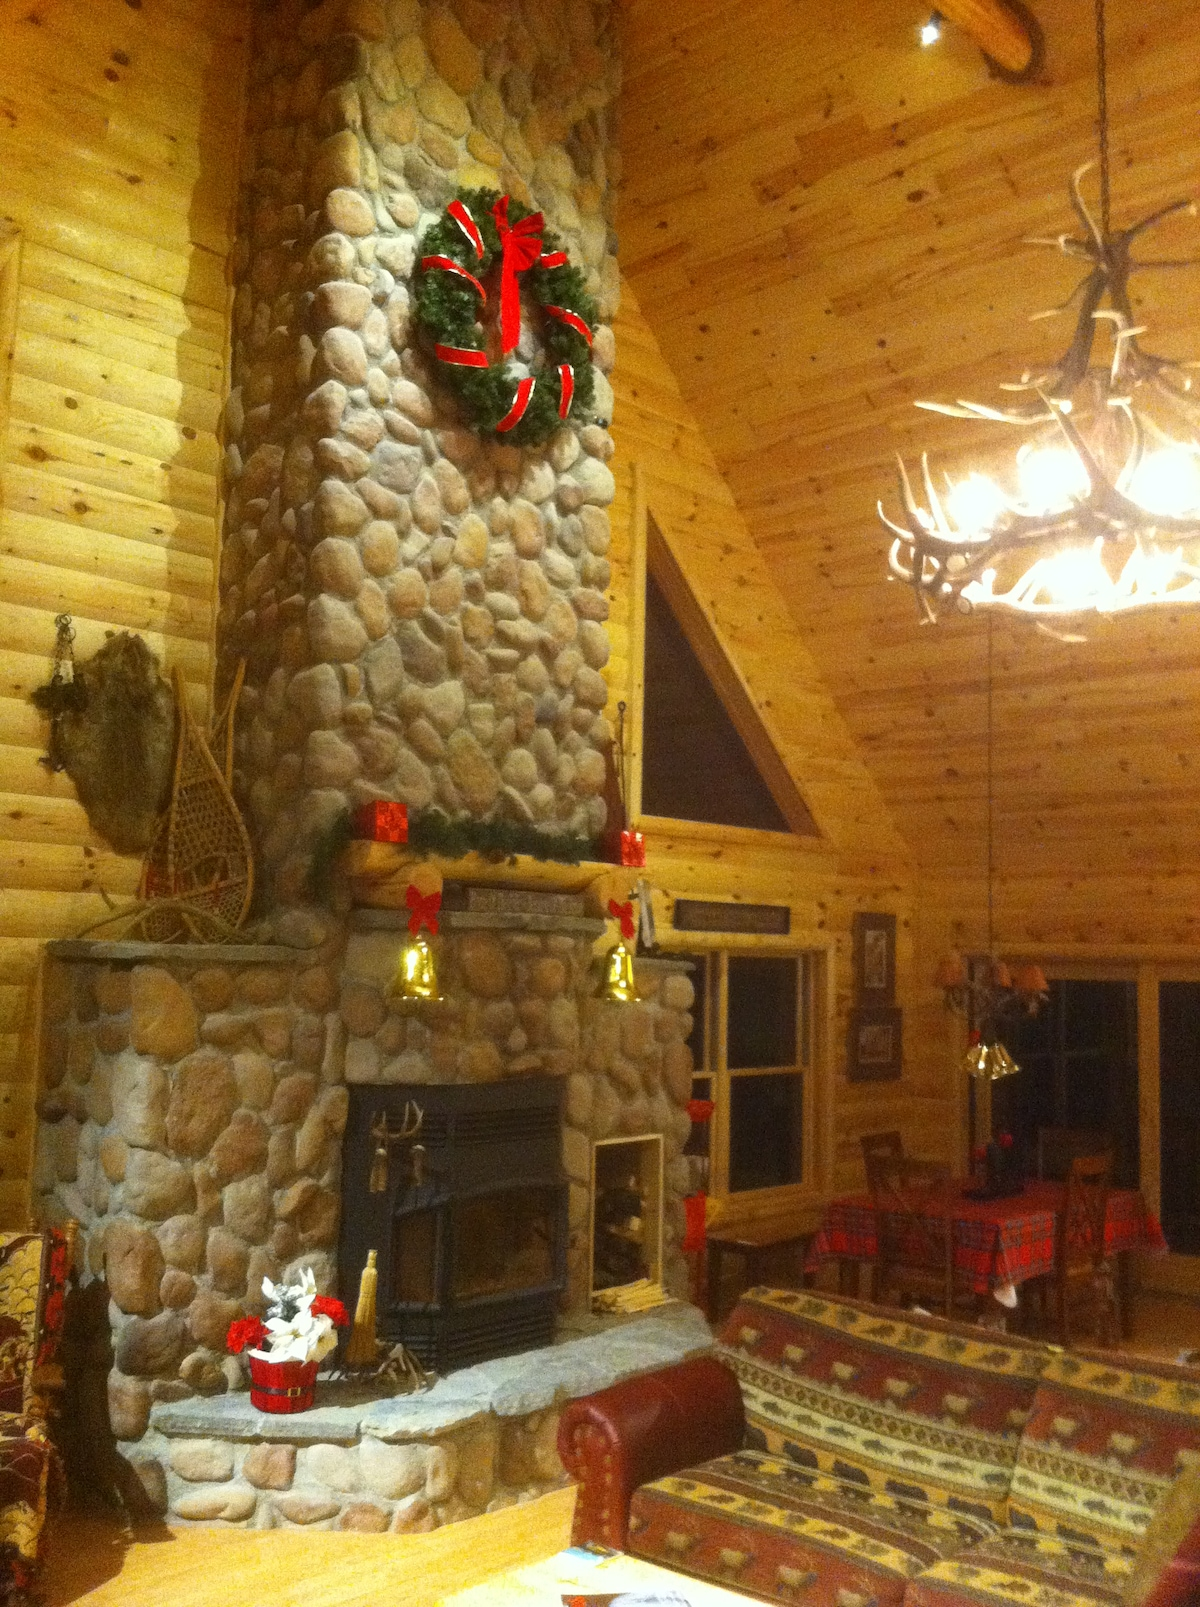 Great room with holiday decorations